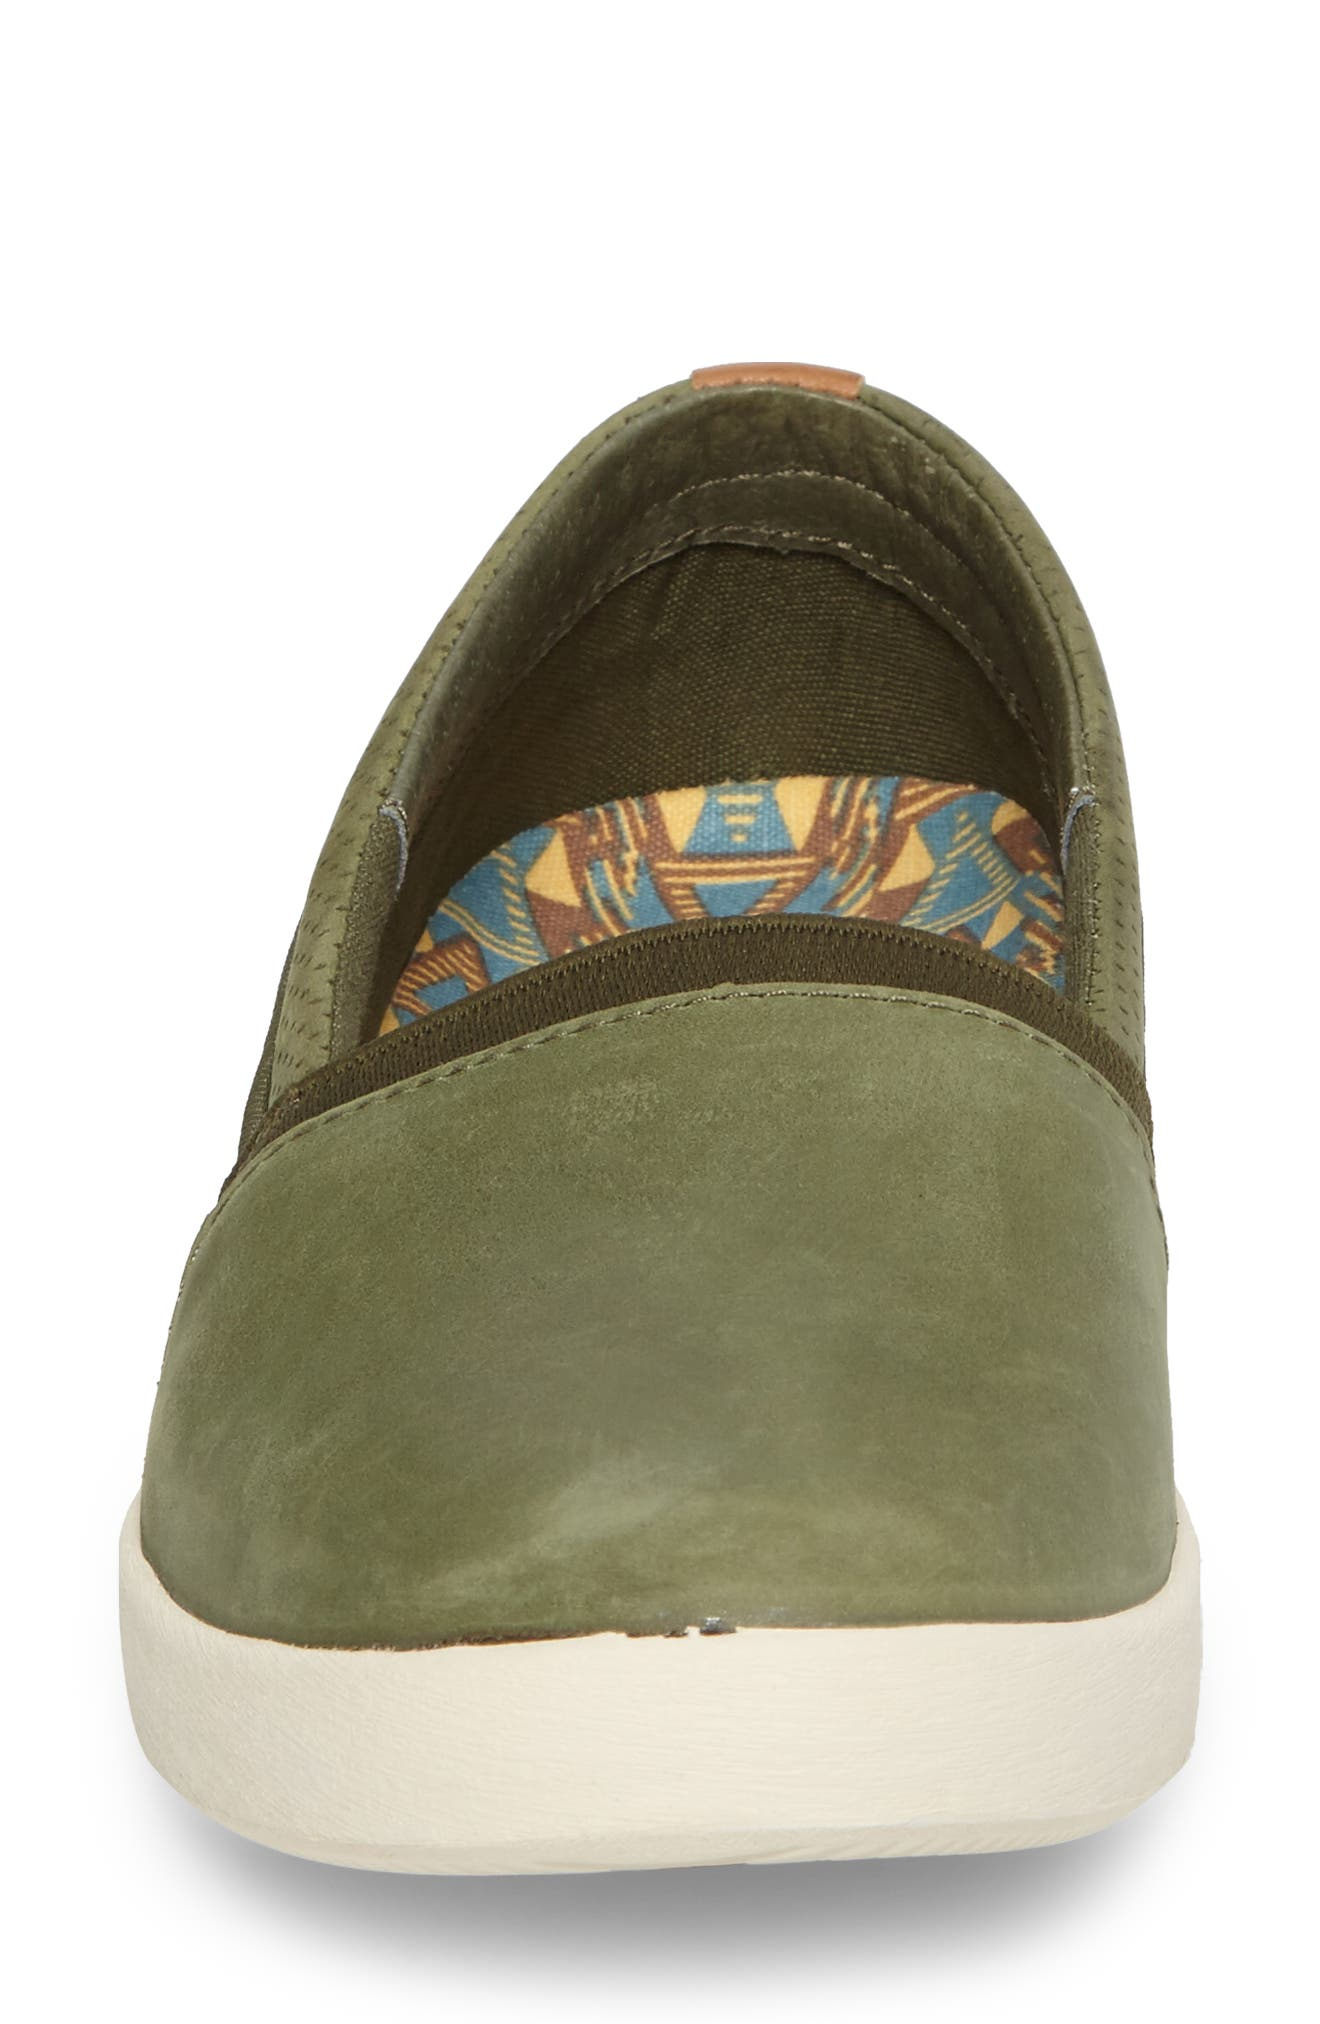 Willow Slip-On Sneaker,                             Alternate thumbnail 3, color,                             Olive Leather